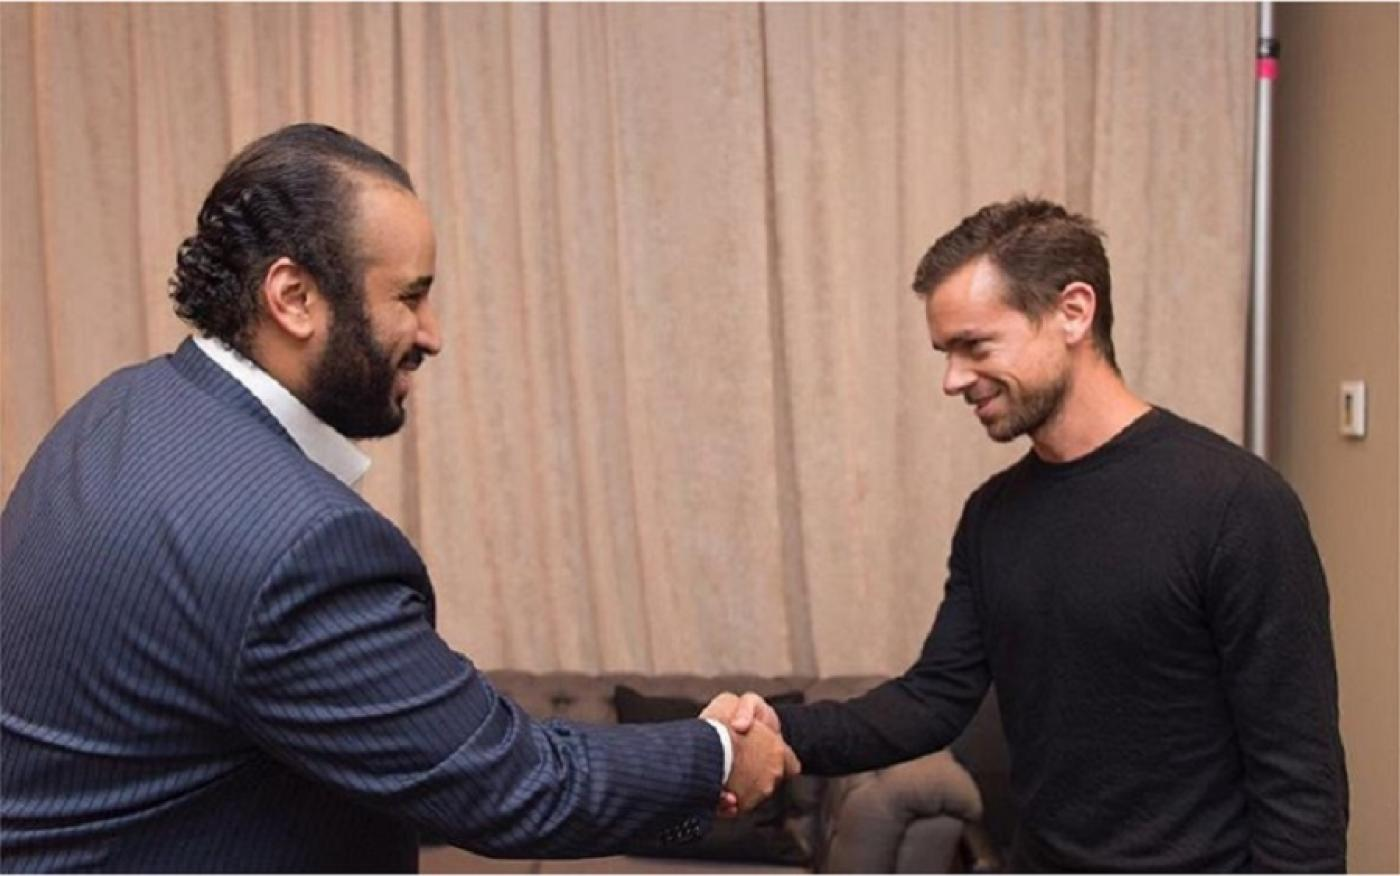 Jack Dorsey and Mohammed bin Salman shaking hands in photo posted by Bader al-Asaker in June 2016 (Instagram)